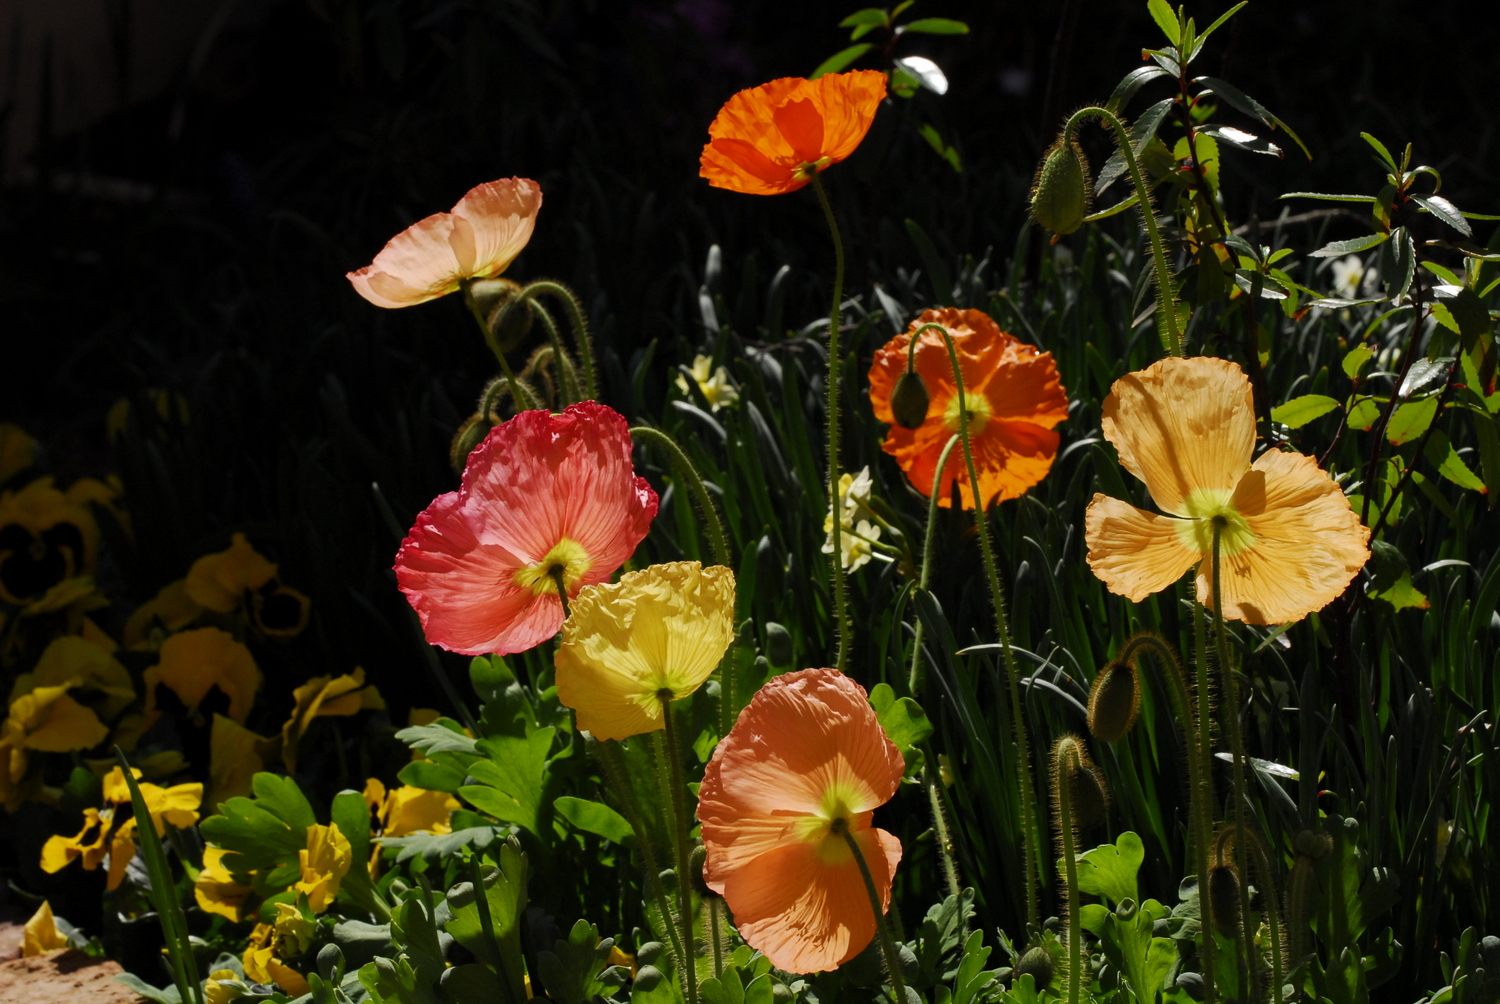 Poppies mays bedding plant life is a garden one of the most favoured poppies for modern day gardens are iceland poppies standing approximately 30cm high when fully grown and available in either mightylinksfo